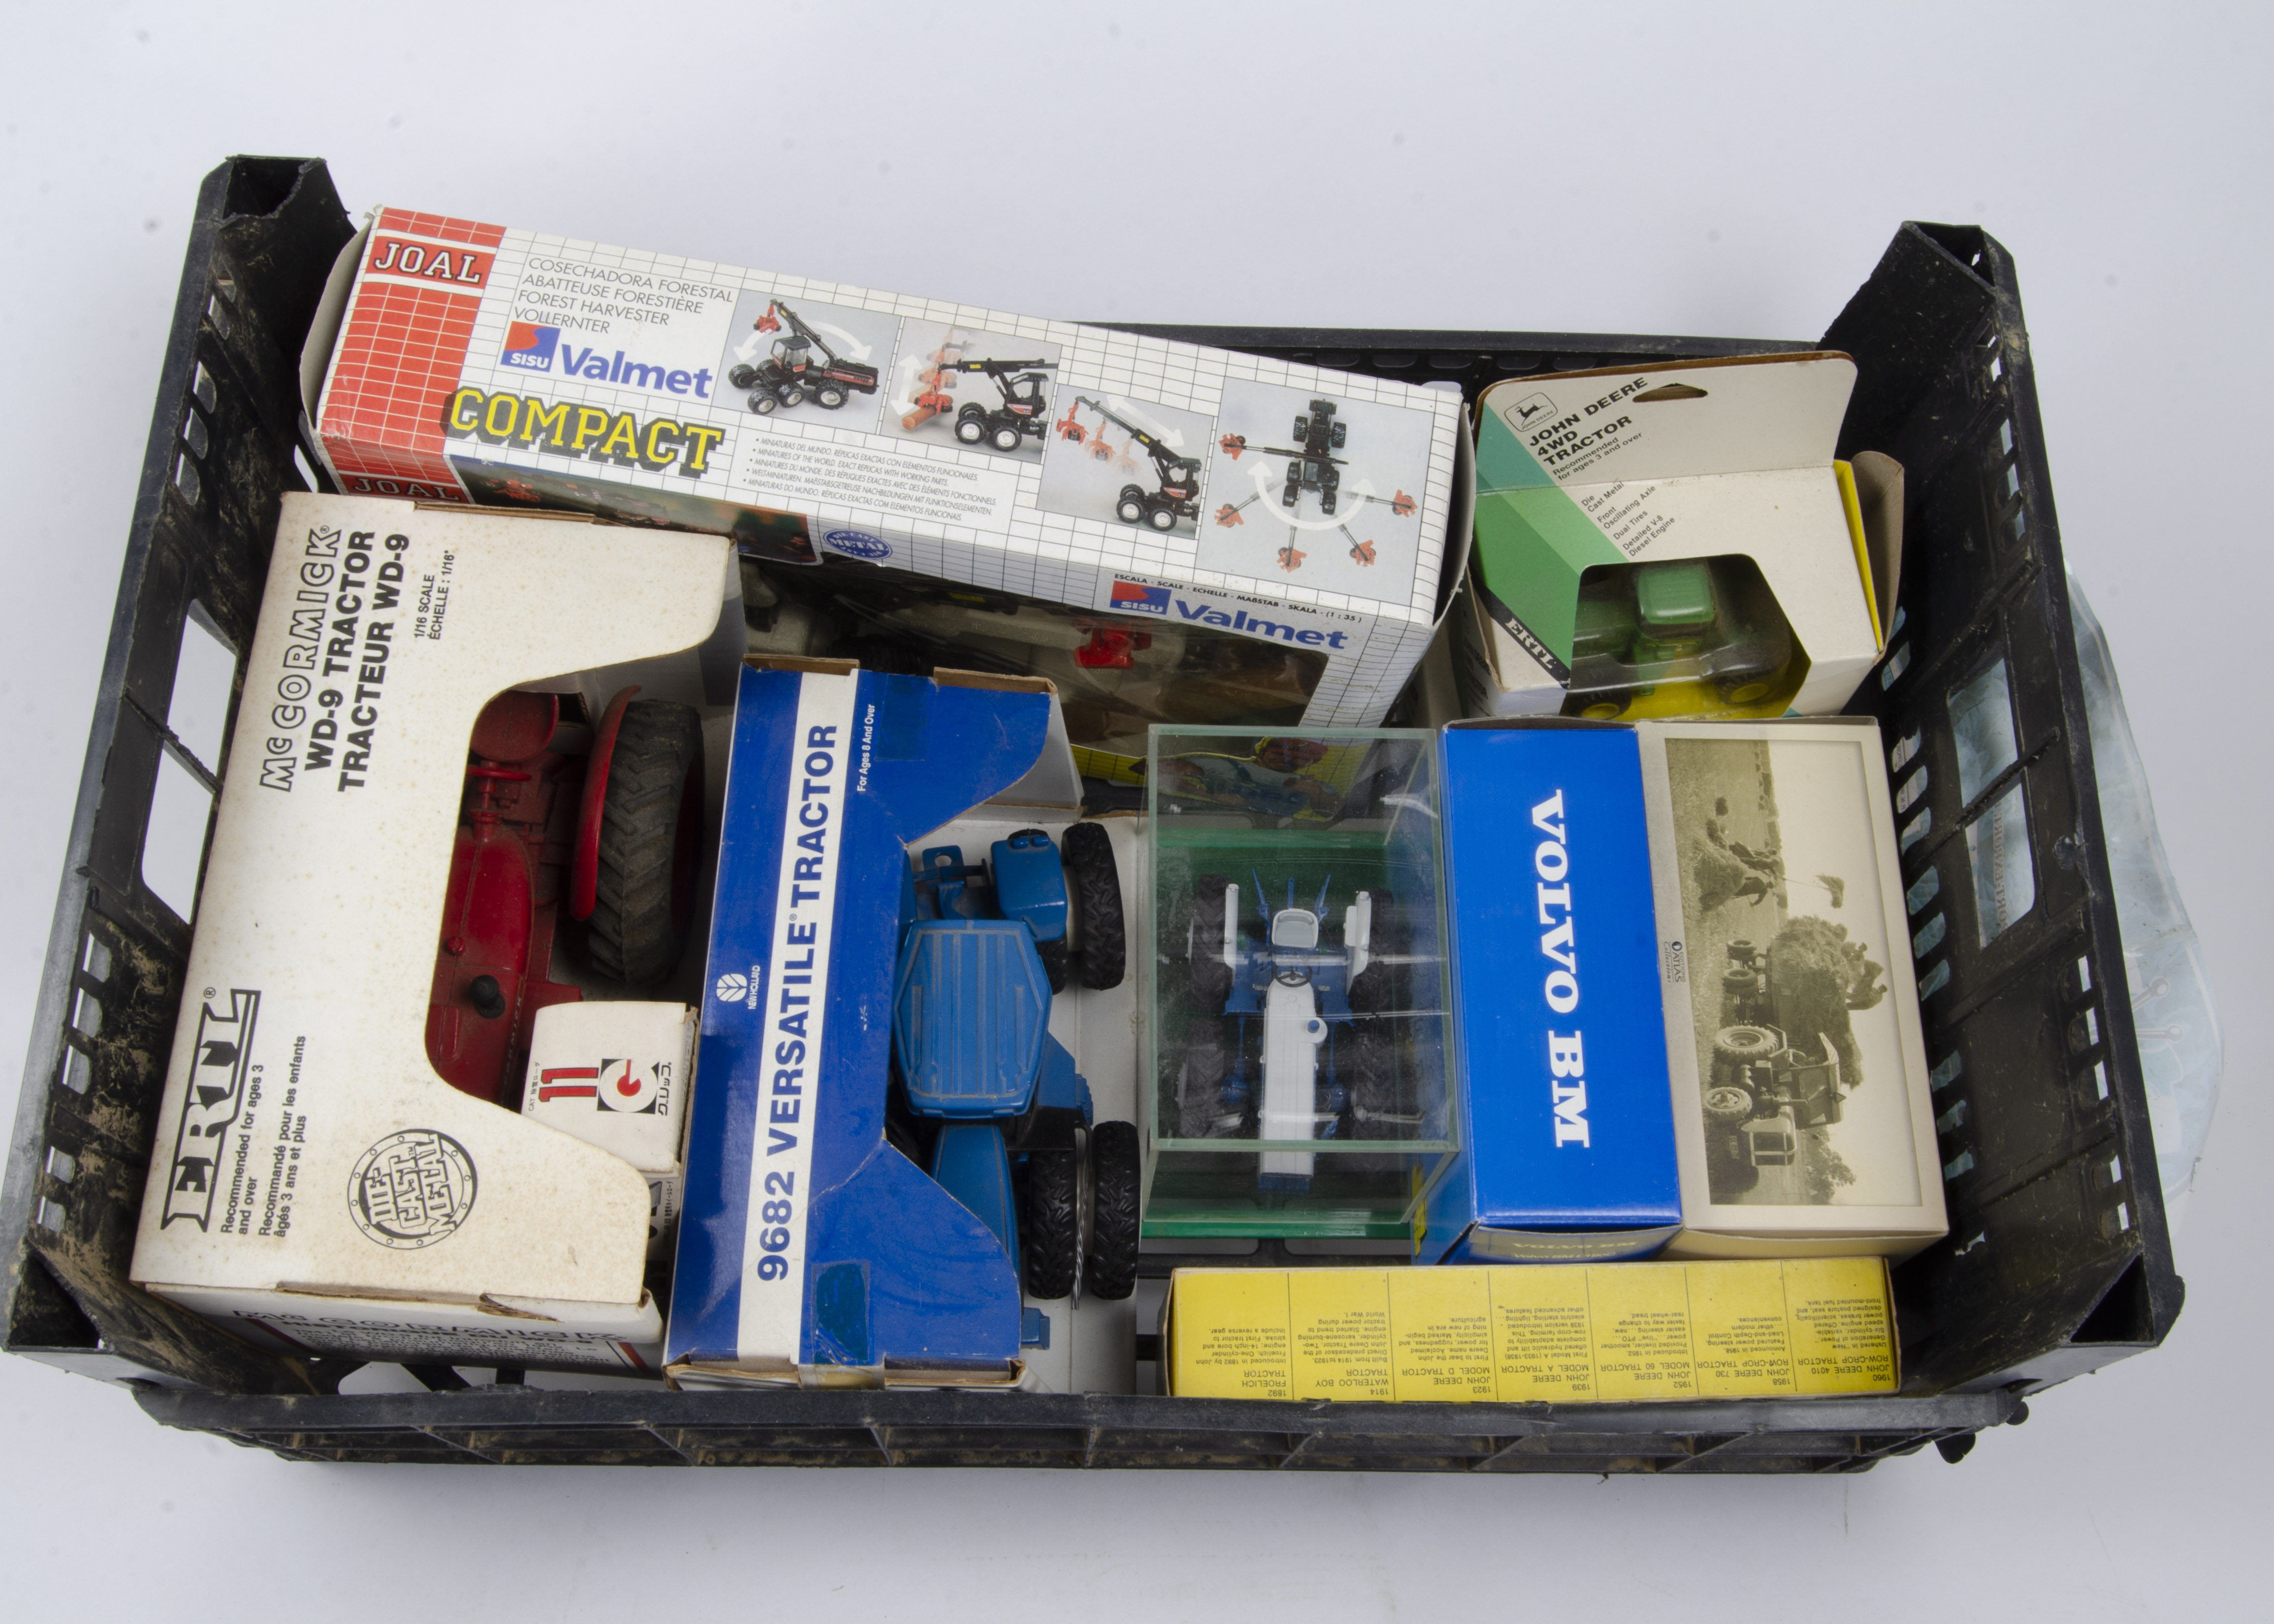 Farming and Commercial Vehicles, a boxed group including, ERTL, 633 1:16 scale McCormick tractor,